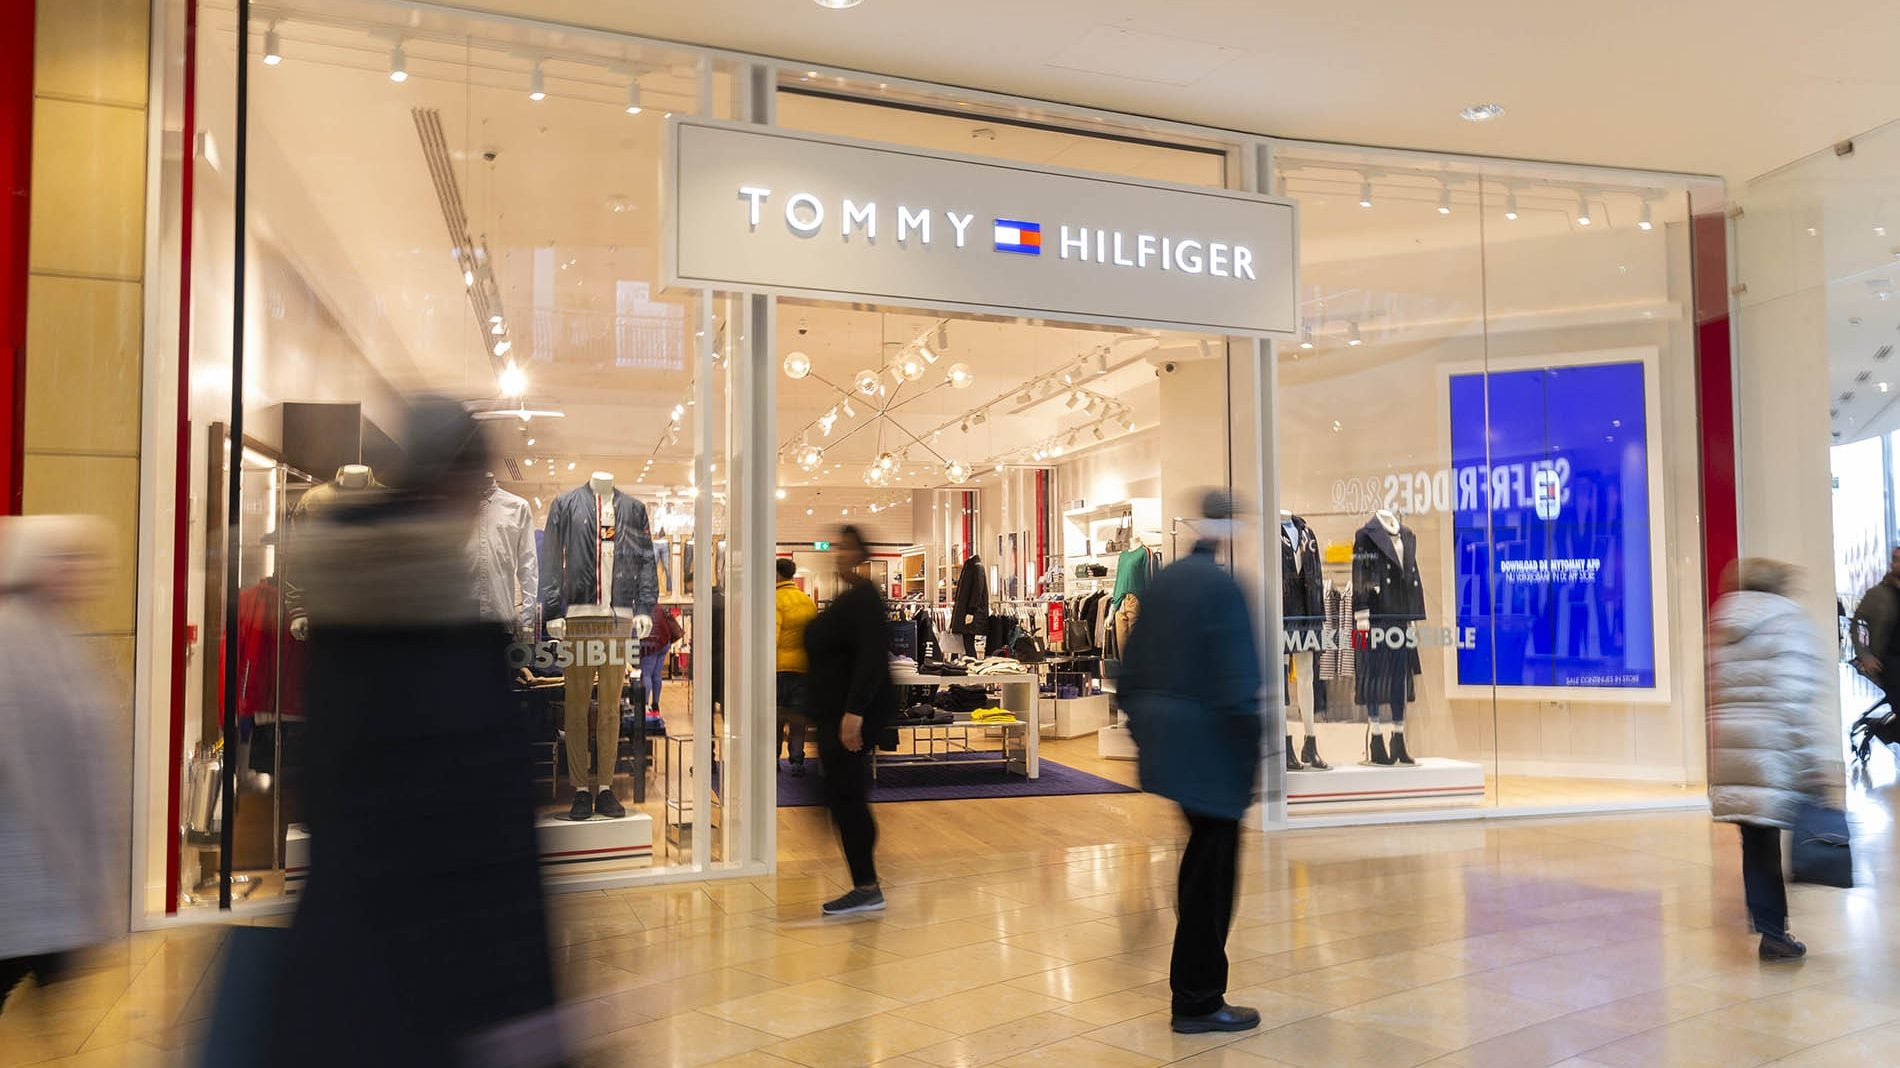 Tommy Hilfiger shopfront at Bullring shopping centre